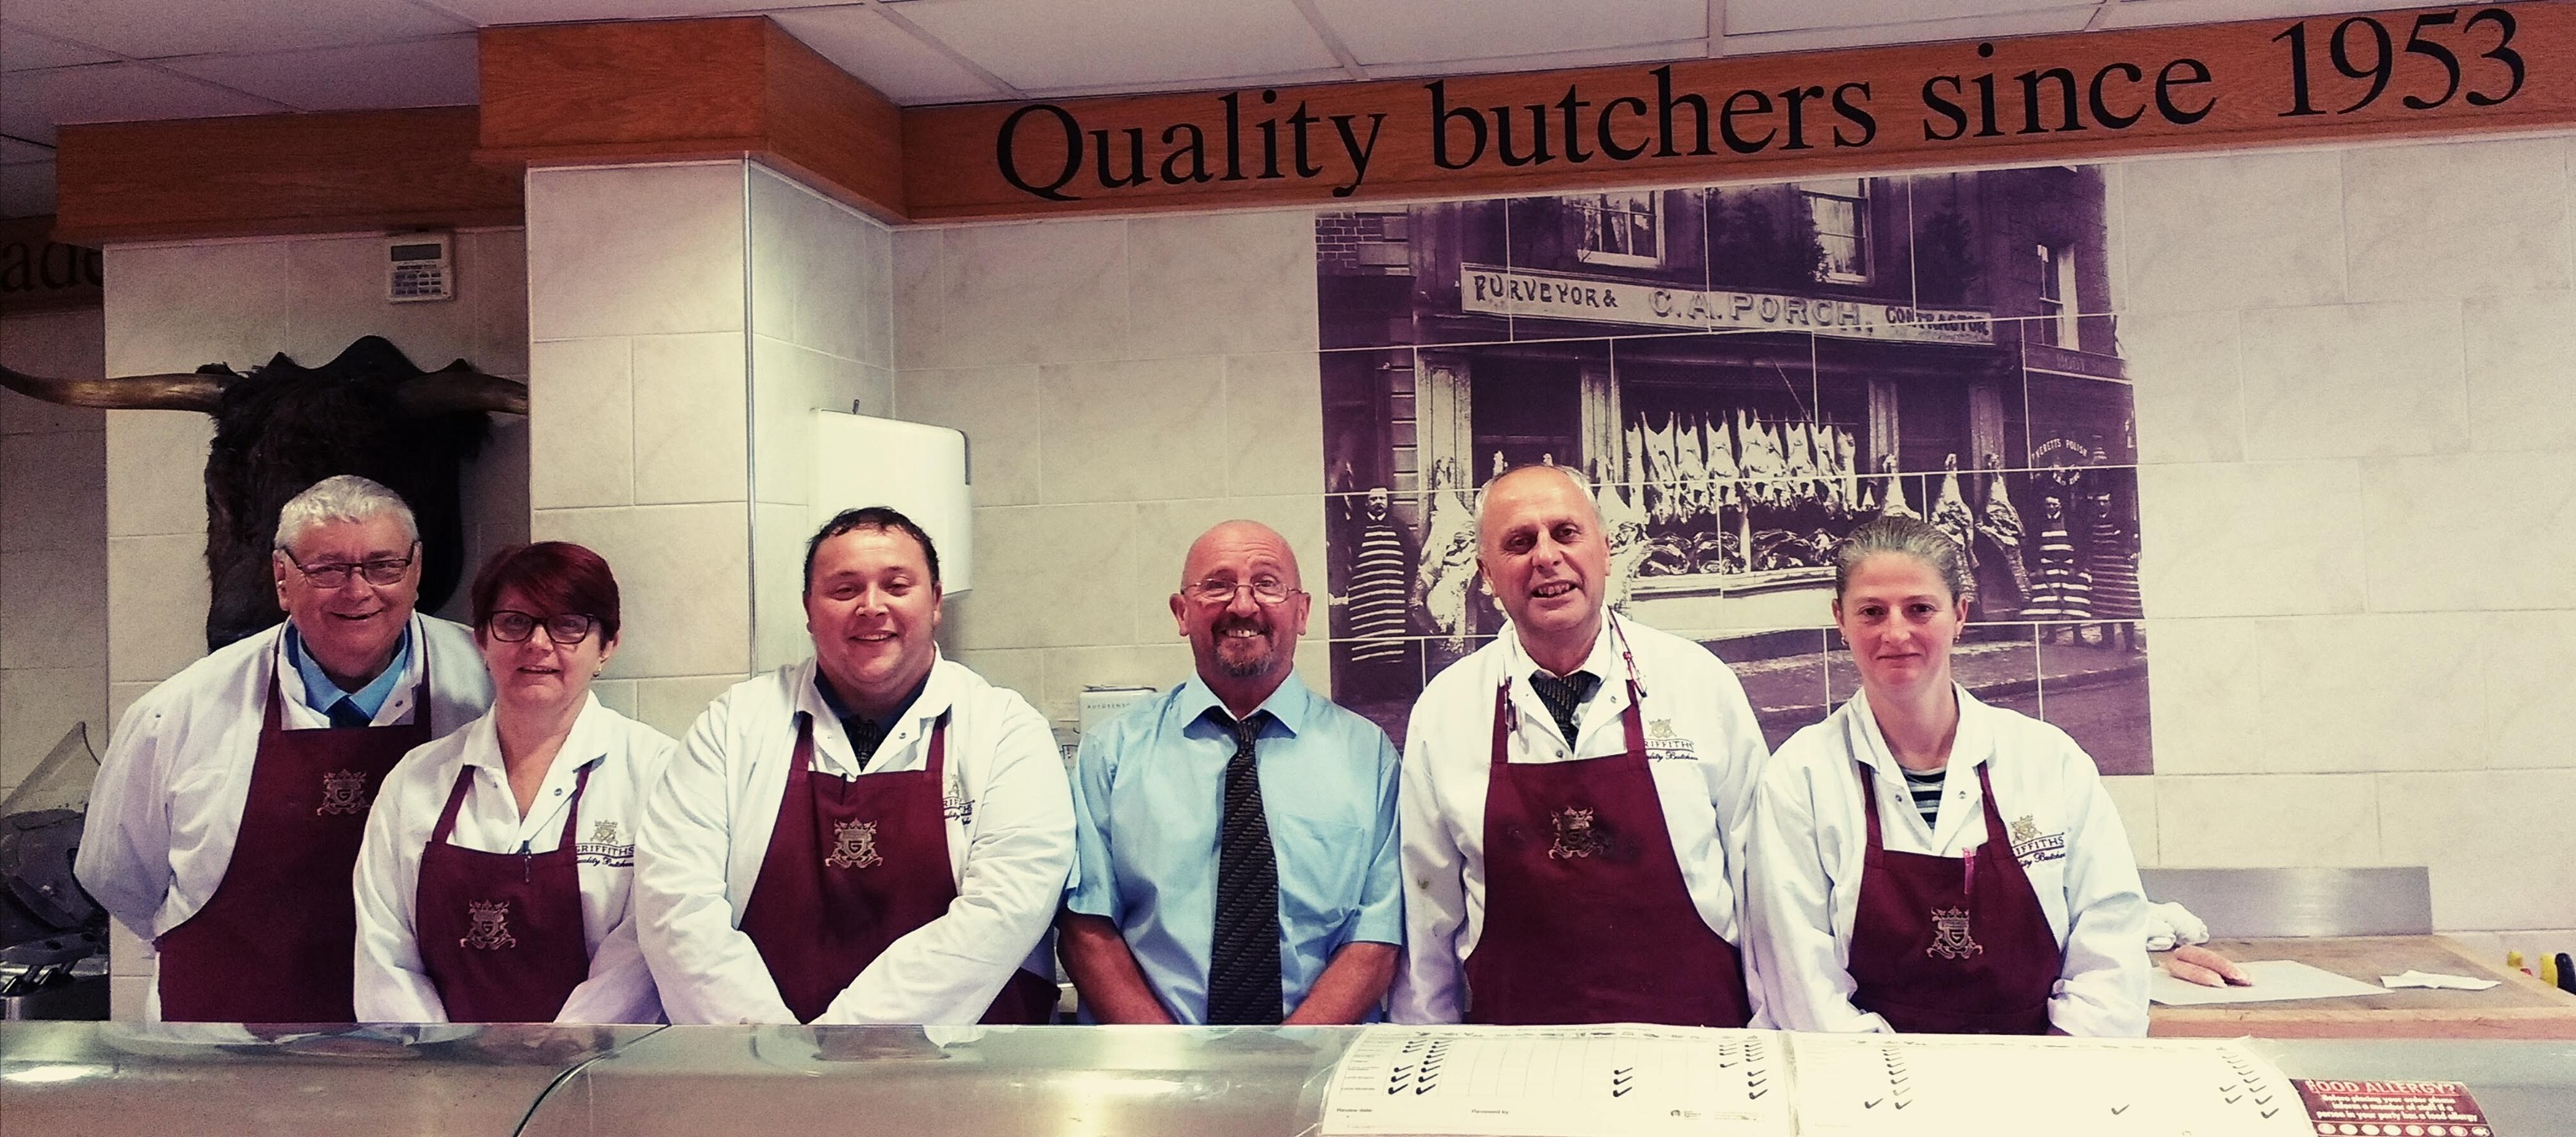 F. Griffiths & Sons Butchers